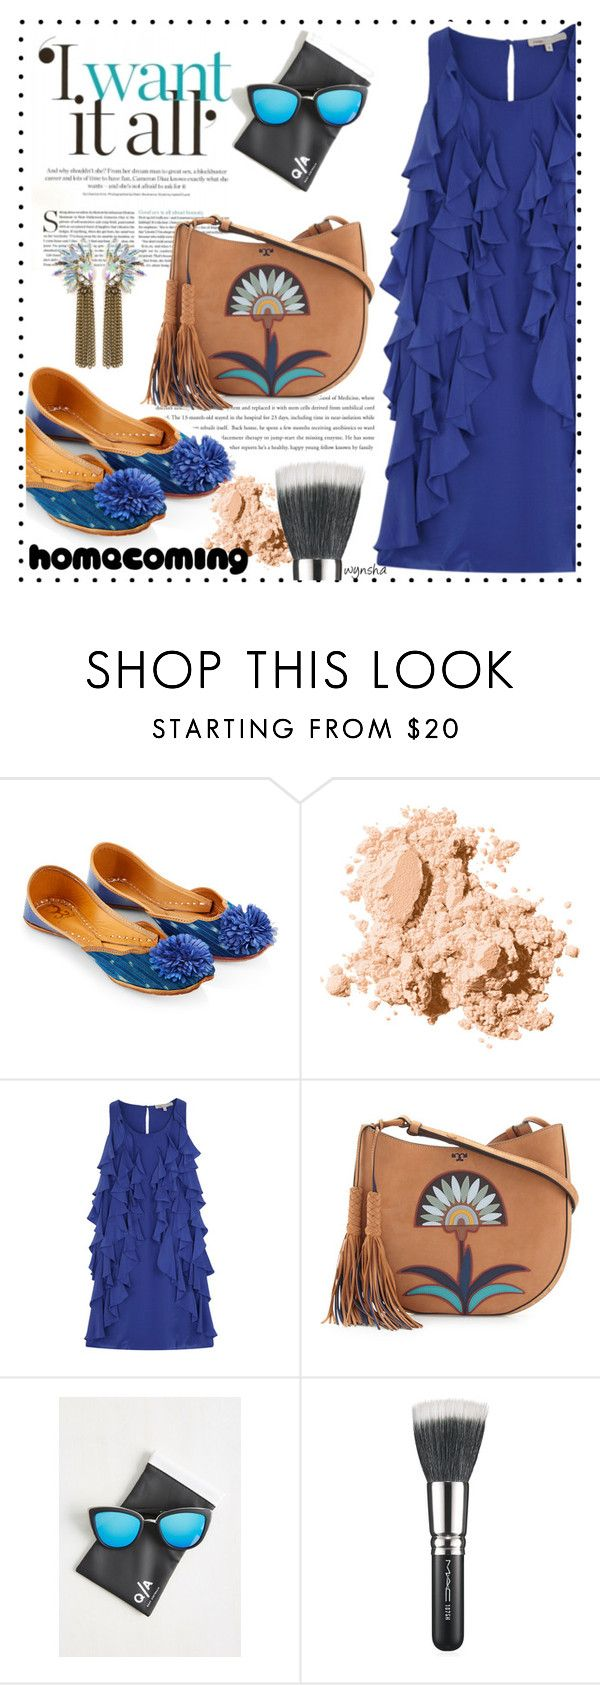 """""""Homecoming Style #2"""" by wynsha ❤ liked on Polyvore featuring Monsoon, Bobbi Brown Cosmetics, Tory Burch, Quay, MAC Cosmetics, Homecoming, polyvorecontest, polyvoreset and PolyvoreMostStylish"""